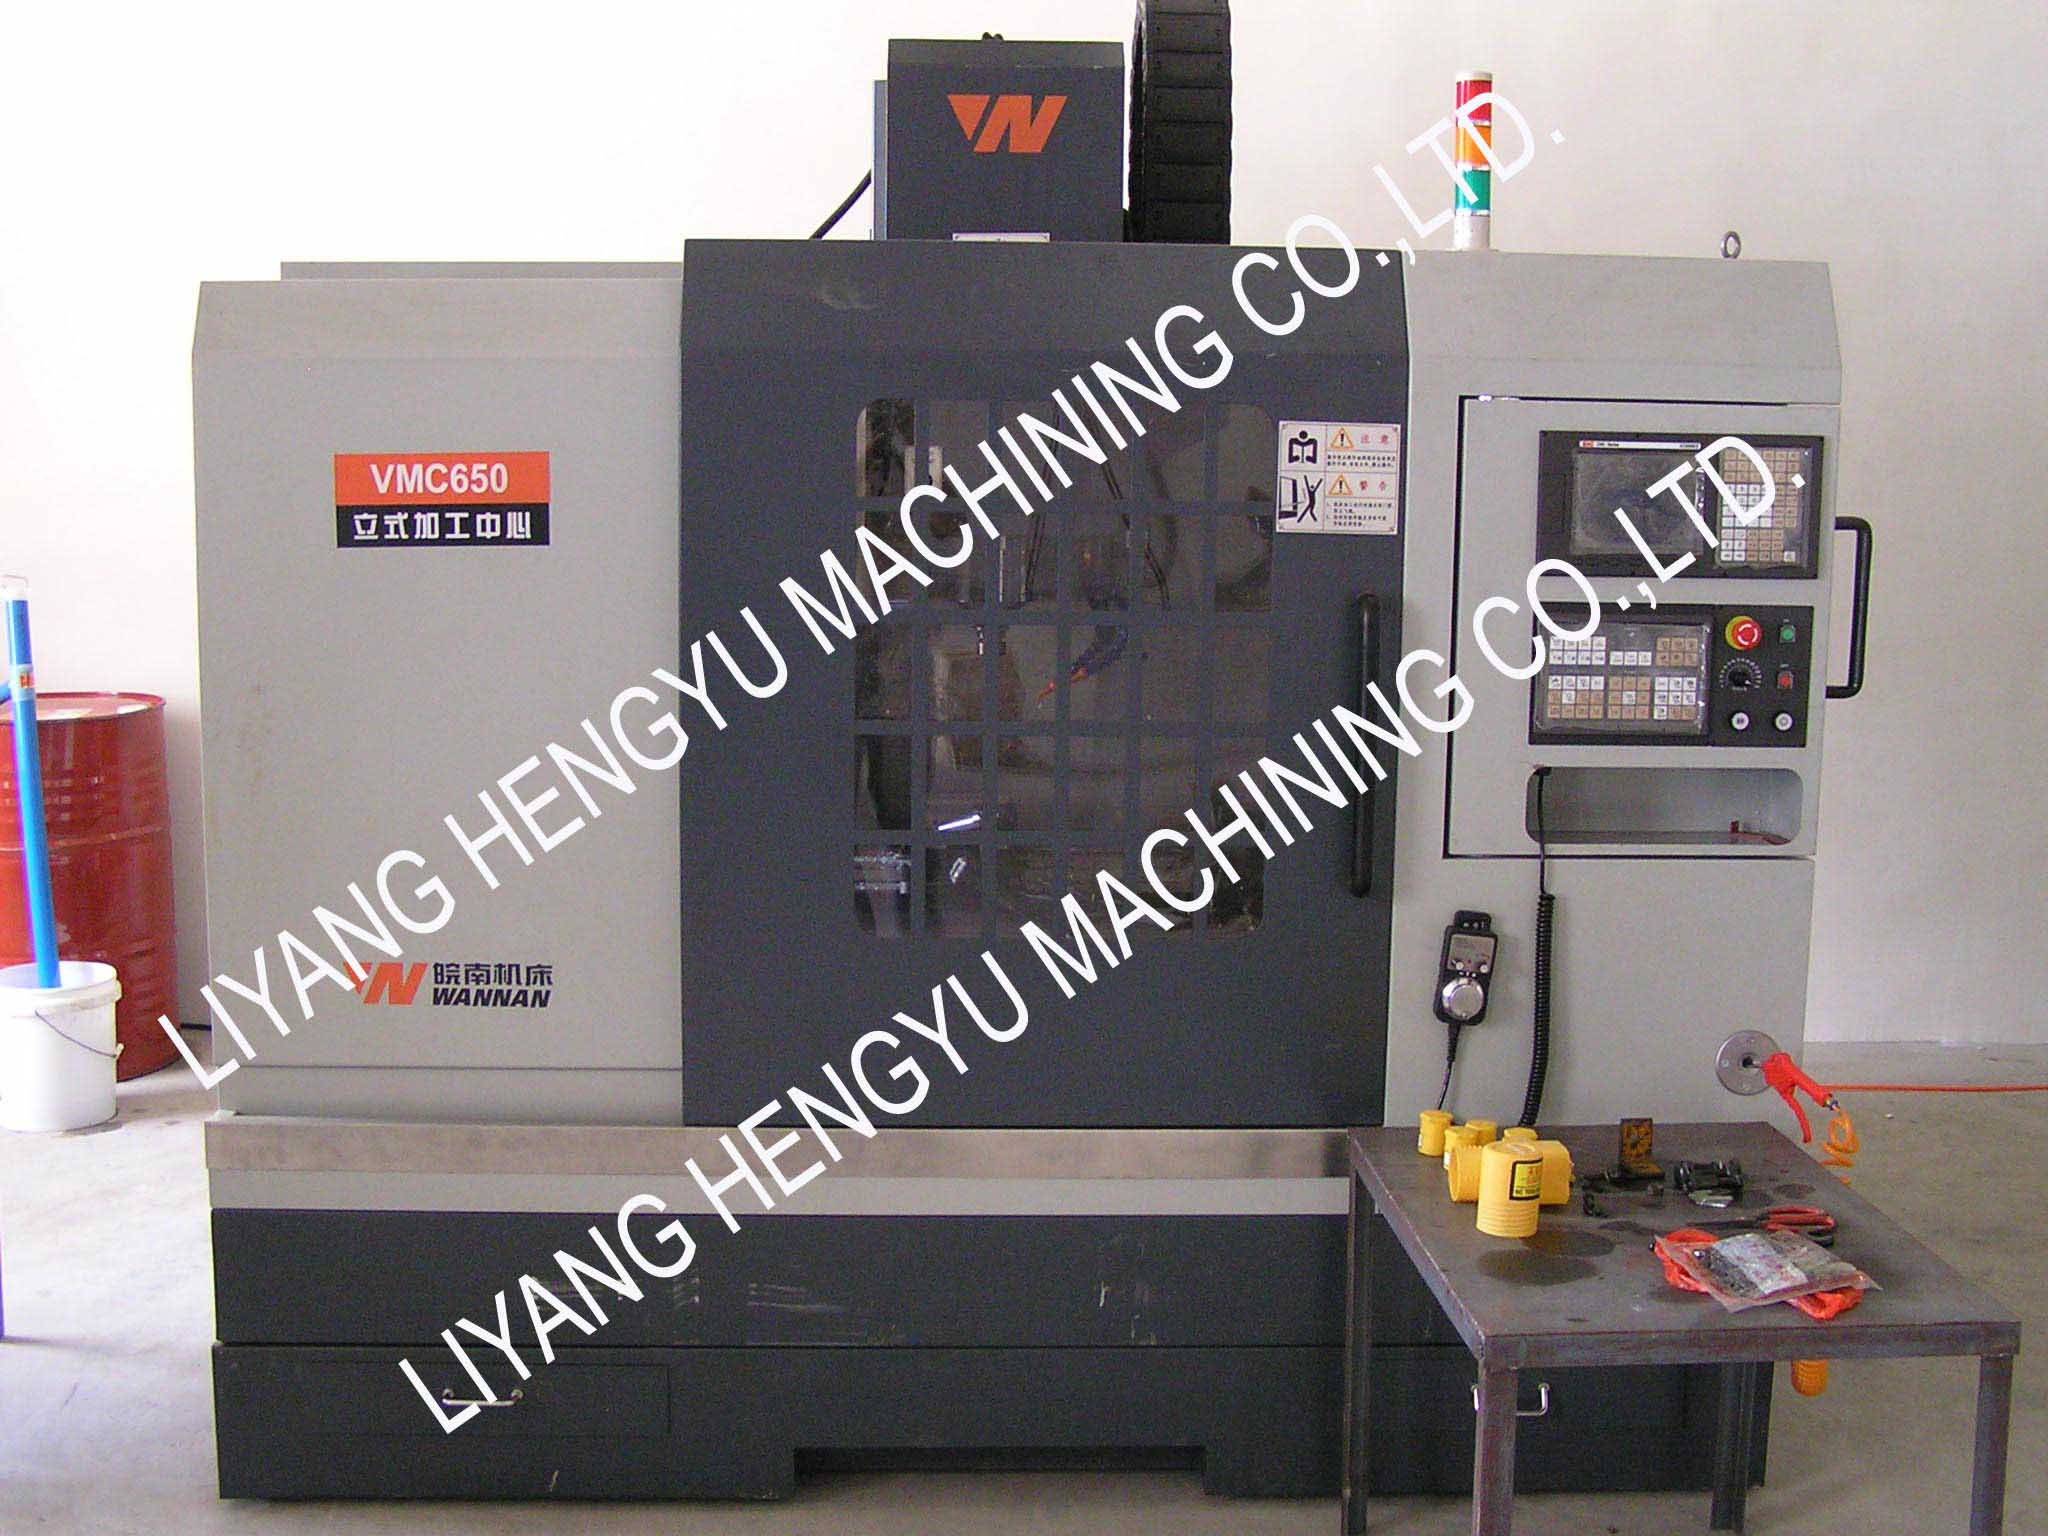 4axle CNC machinery